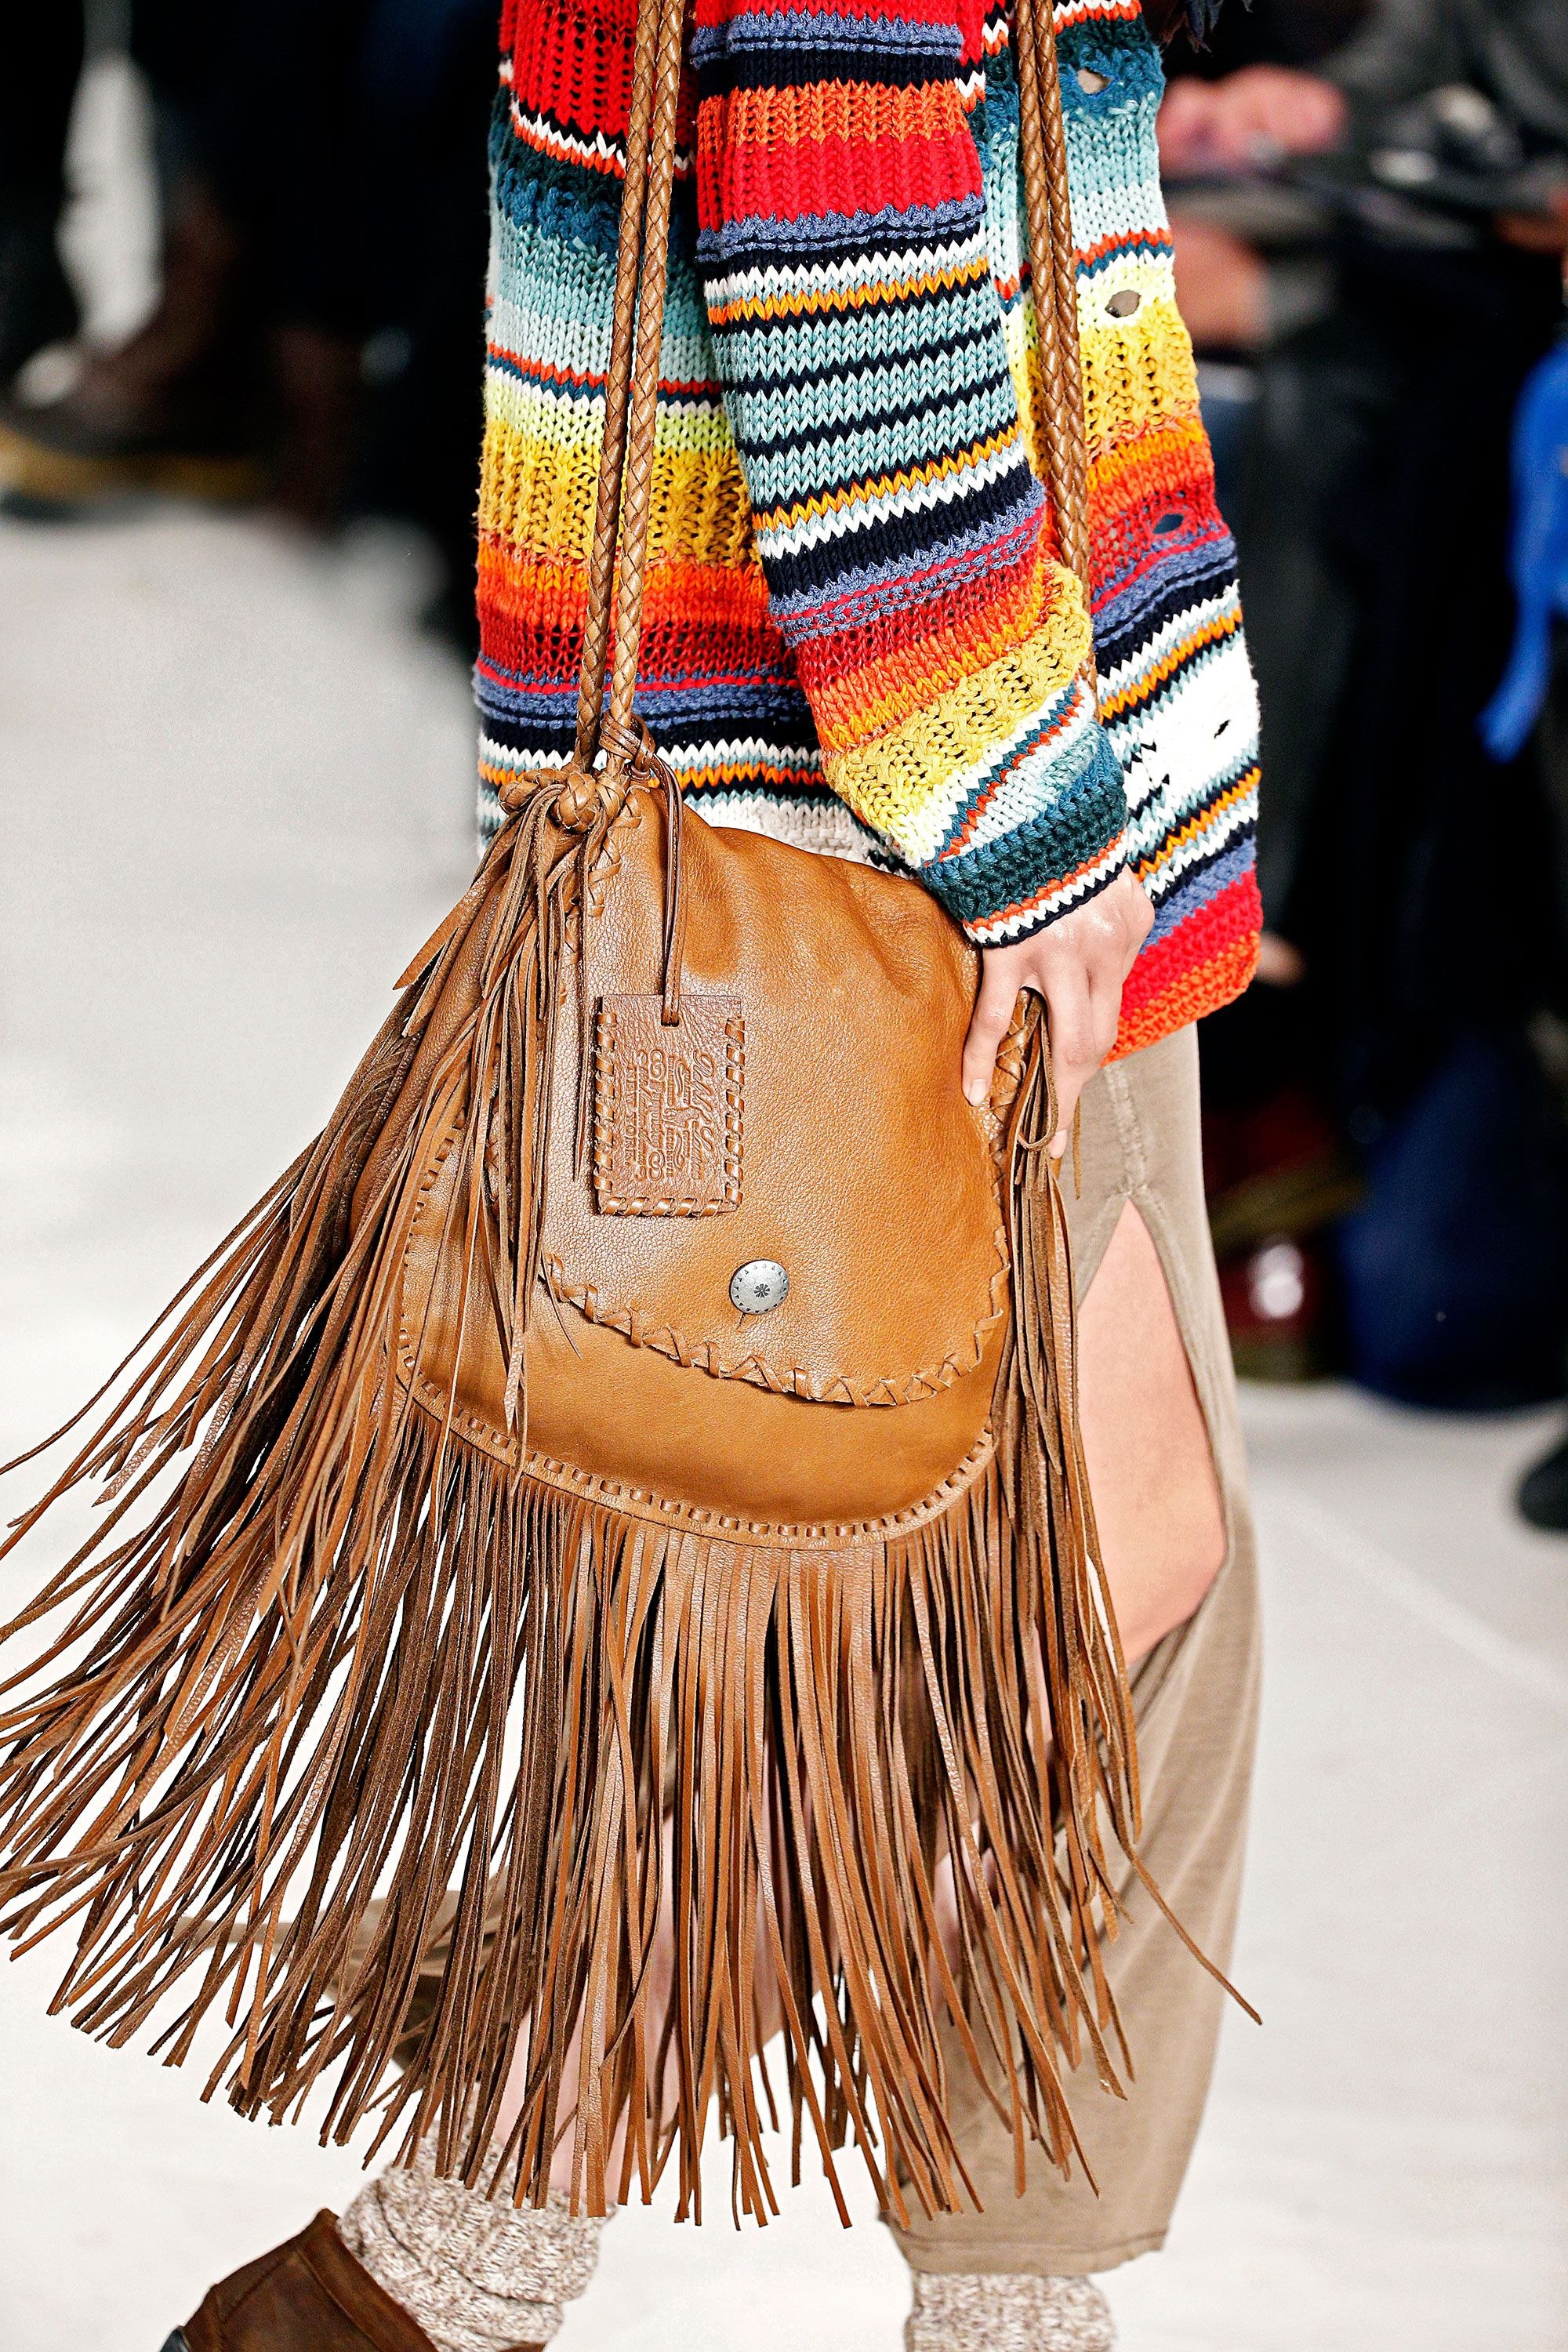 This Polo Ralph Lauren Fringed Messenger Bag Takes Boho Chic To A Whole New Level